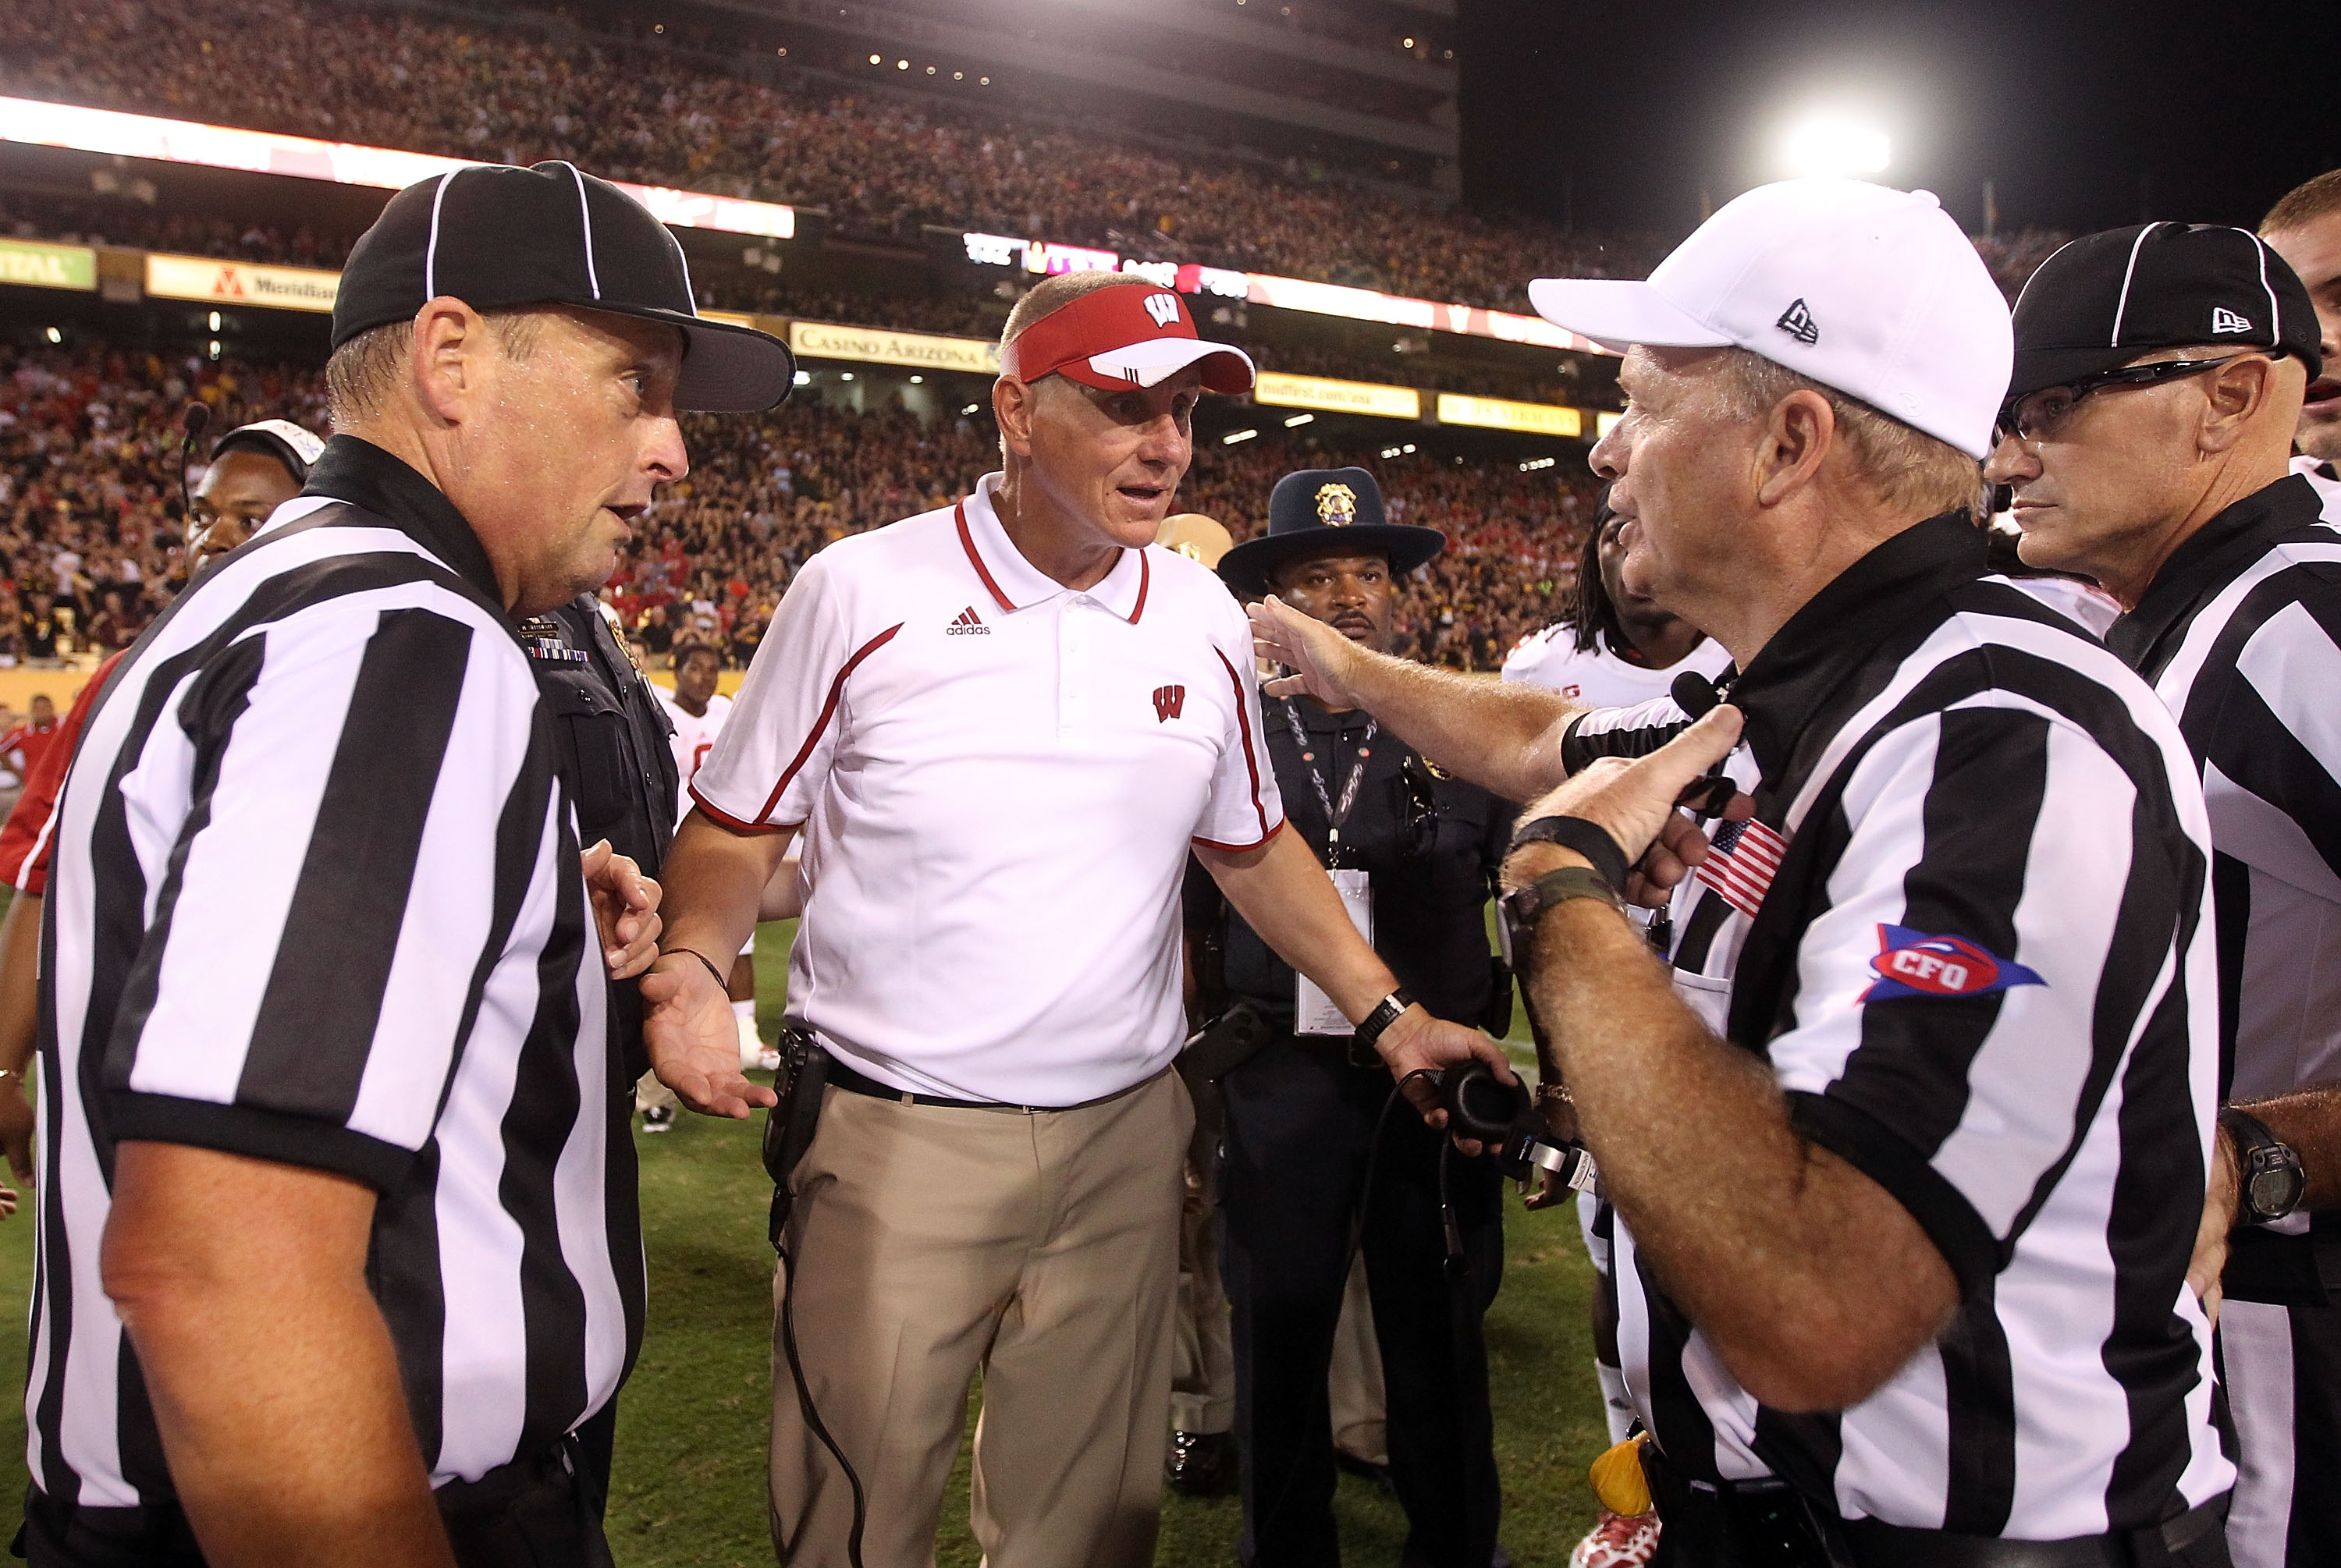 Gary Andersen gives the referees an earful after Wisconsin's 32-30 loss to Arizona State. (Getty)